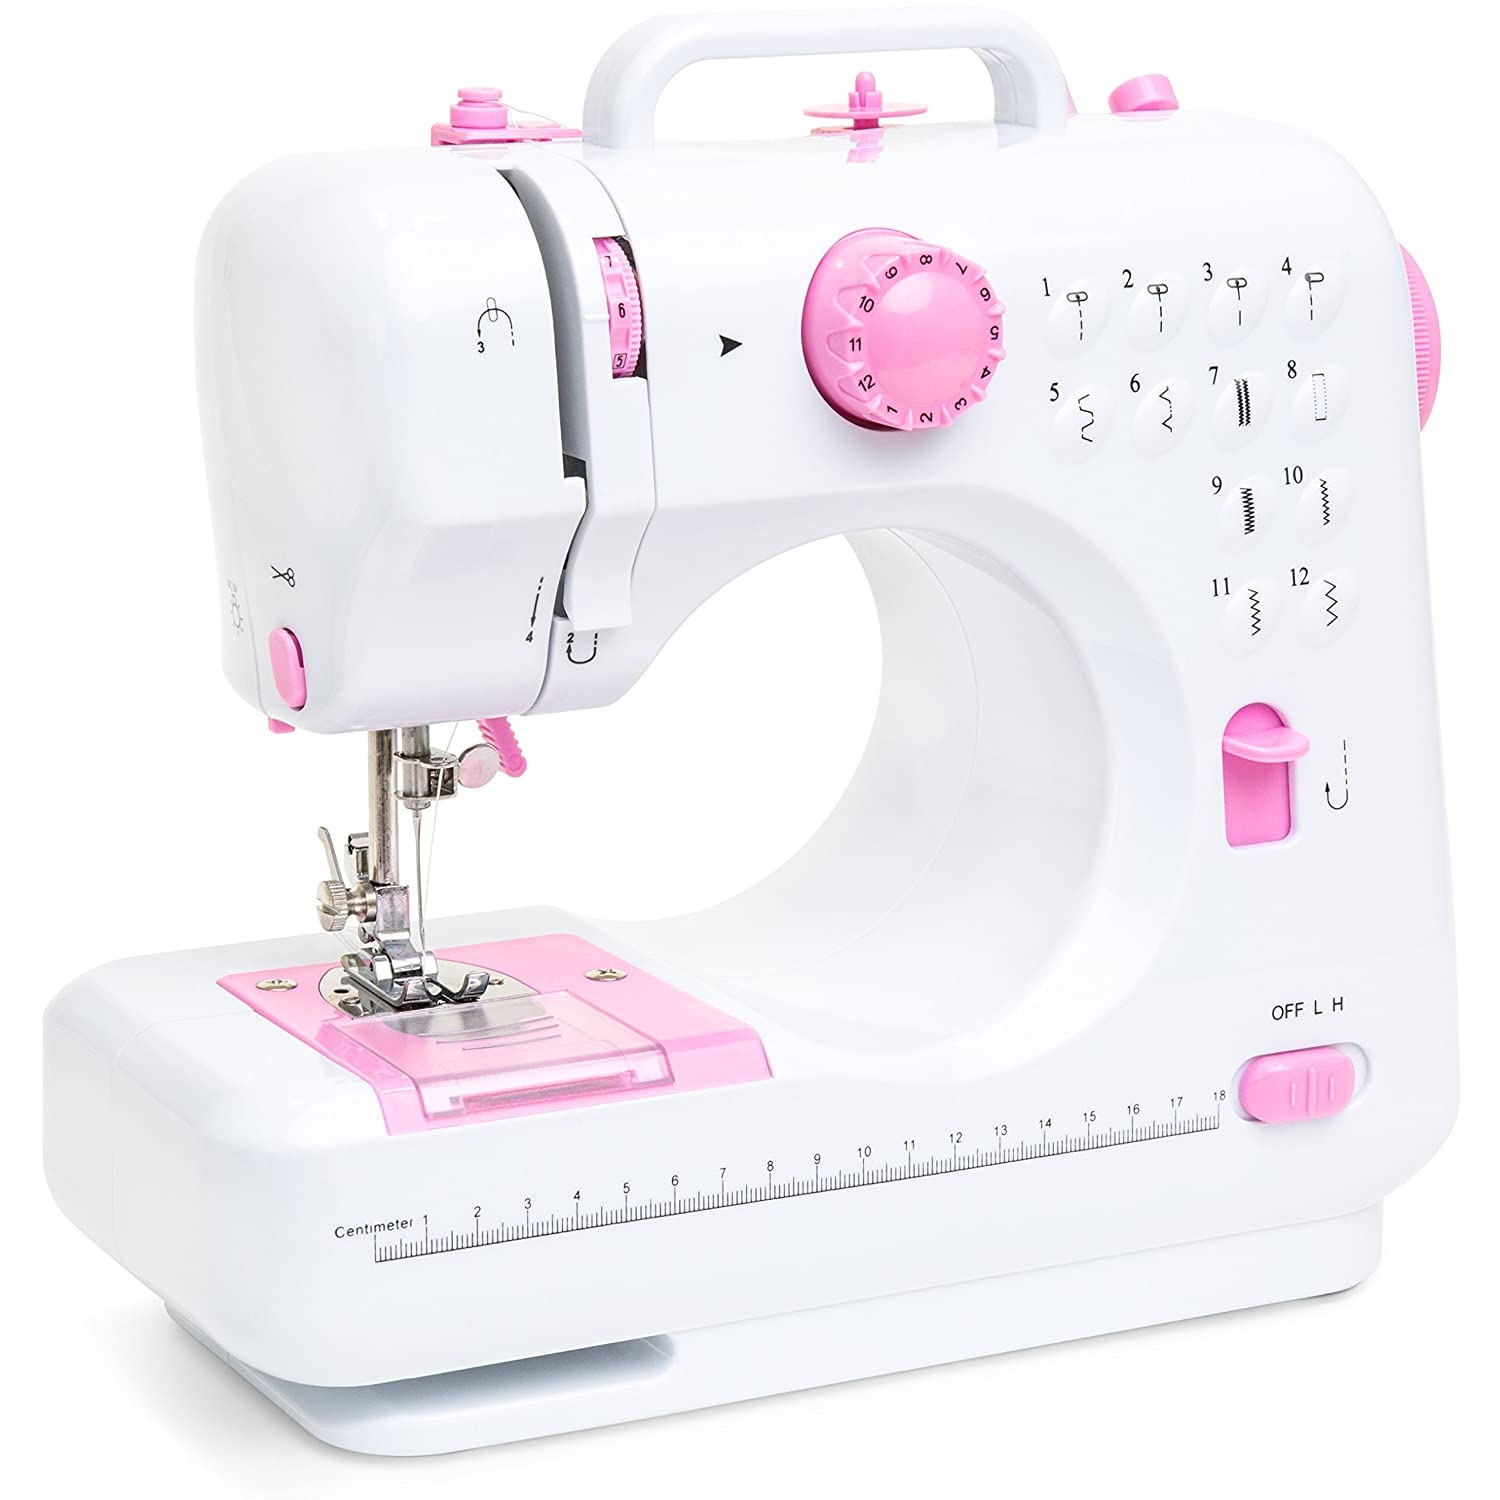 Best Choice Products 6V Compact Sewing Machine w/ 12 Preset Stitch Patterns  Built-In Sewing Light  Drawer & Foot Pedal